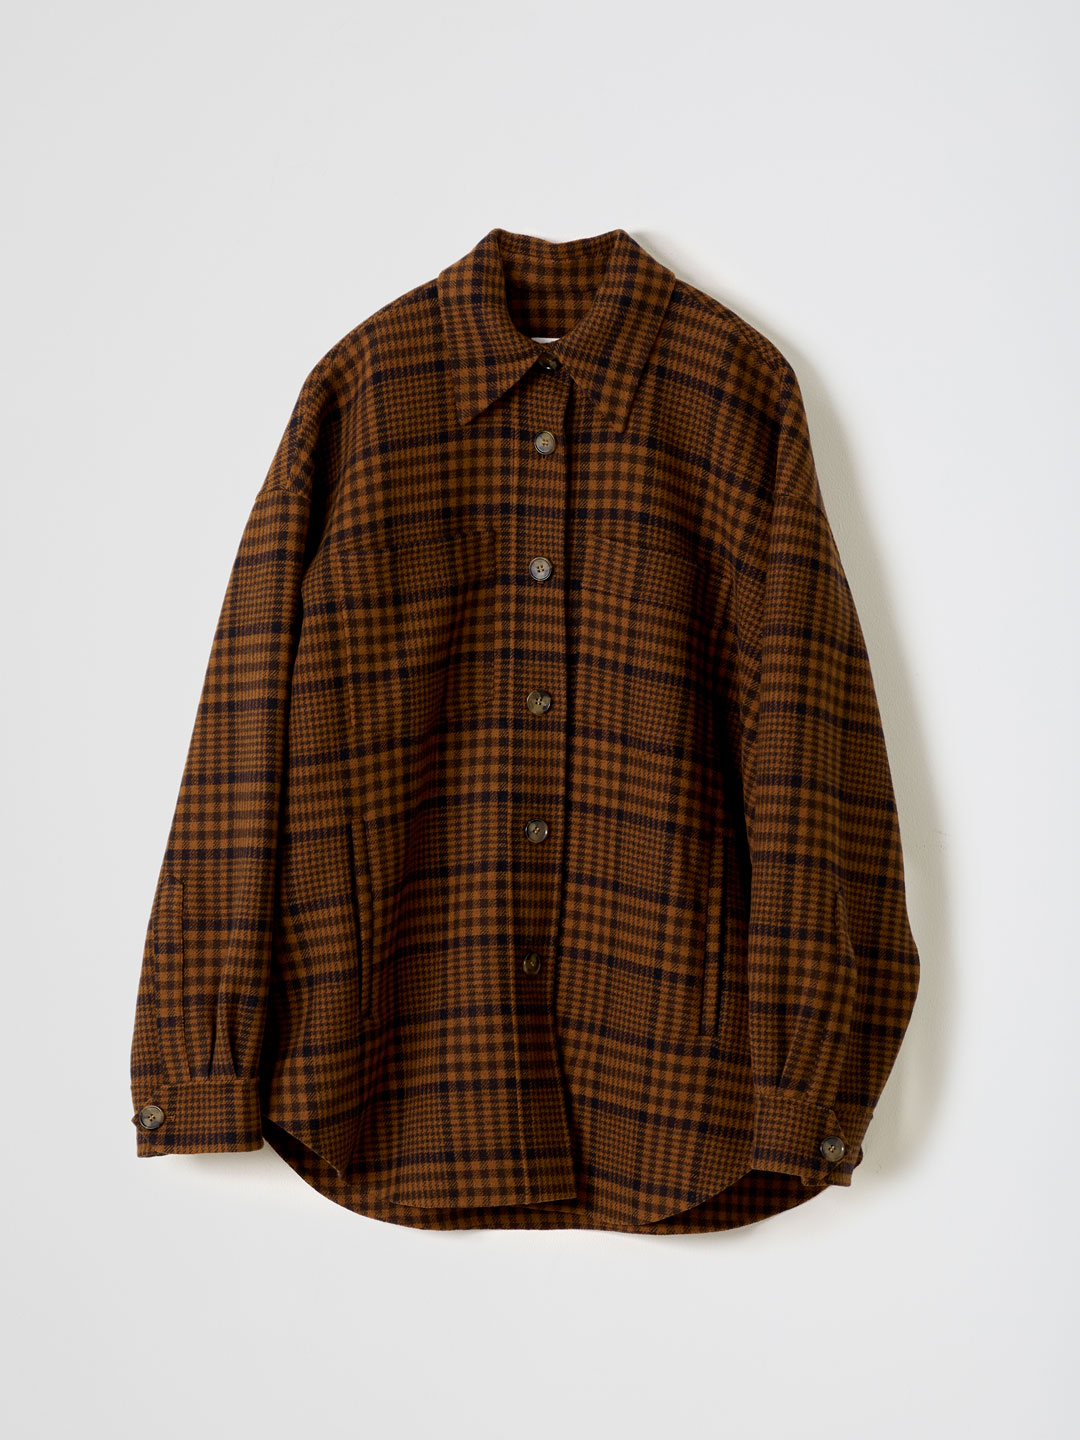 Martin / Wool Nylon Check Overshirt Jacket - Brown